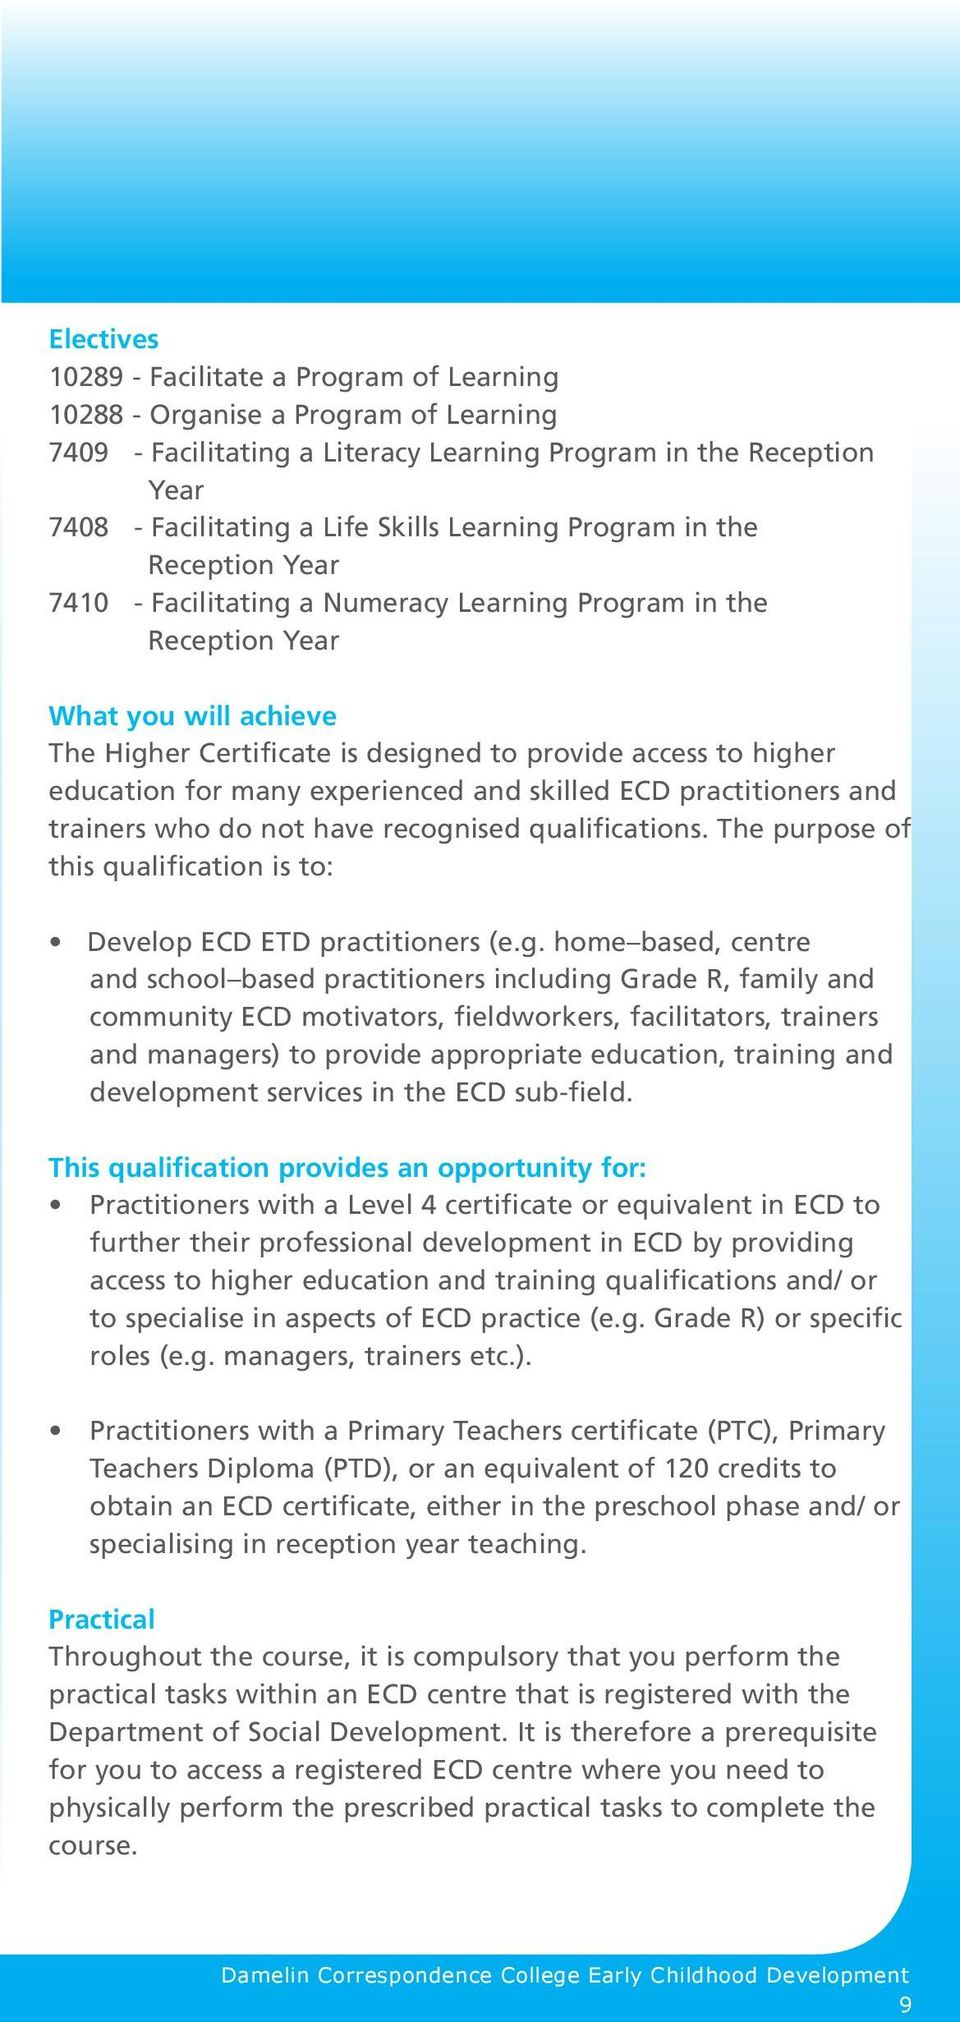 education for many experienced and skilled ECD practitioners and trainers who do not have recogn